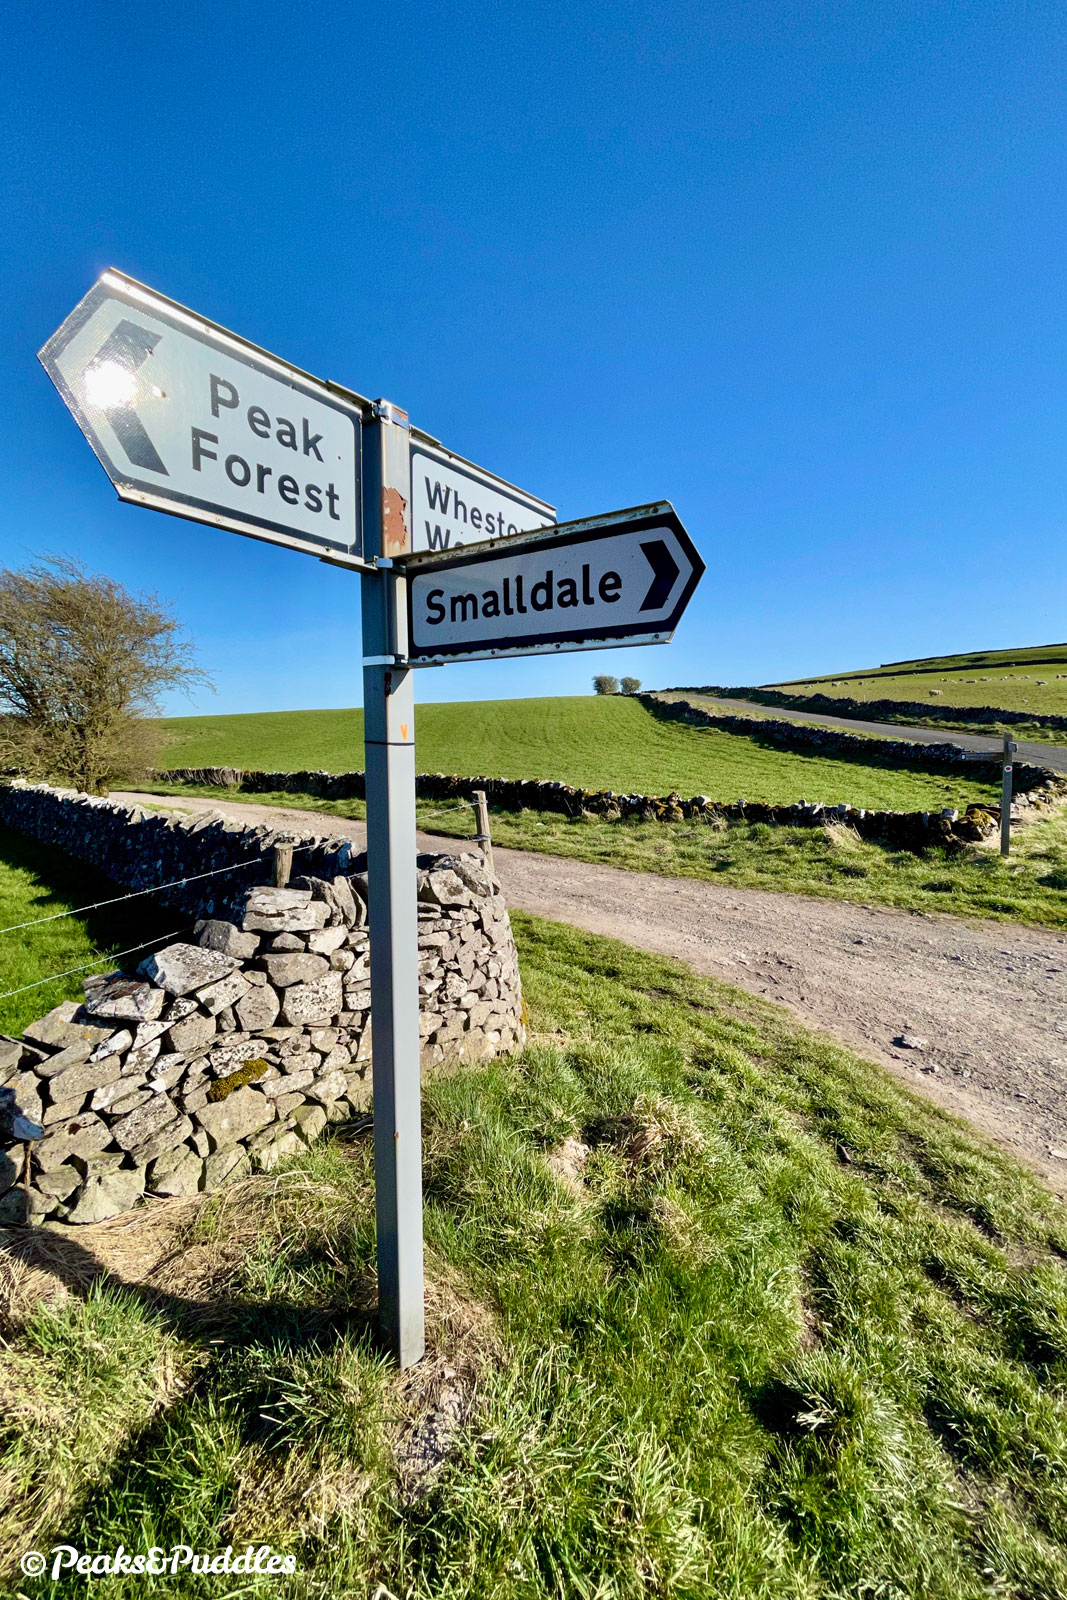 Signposts point right to Smalldale. The road onwards to Wheston and Tideswell is also ideal for cycling.